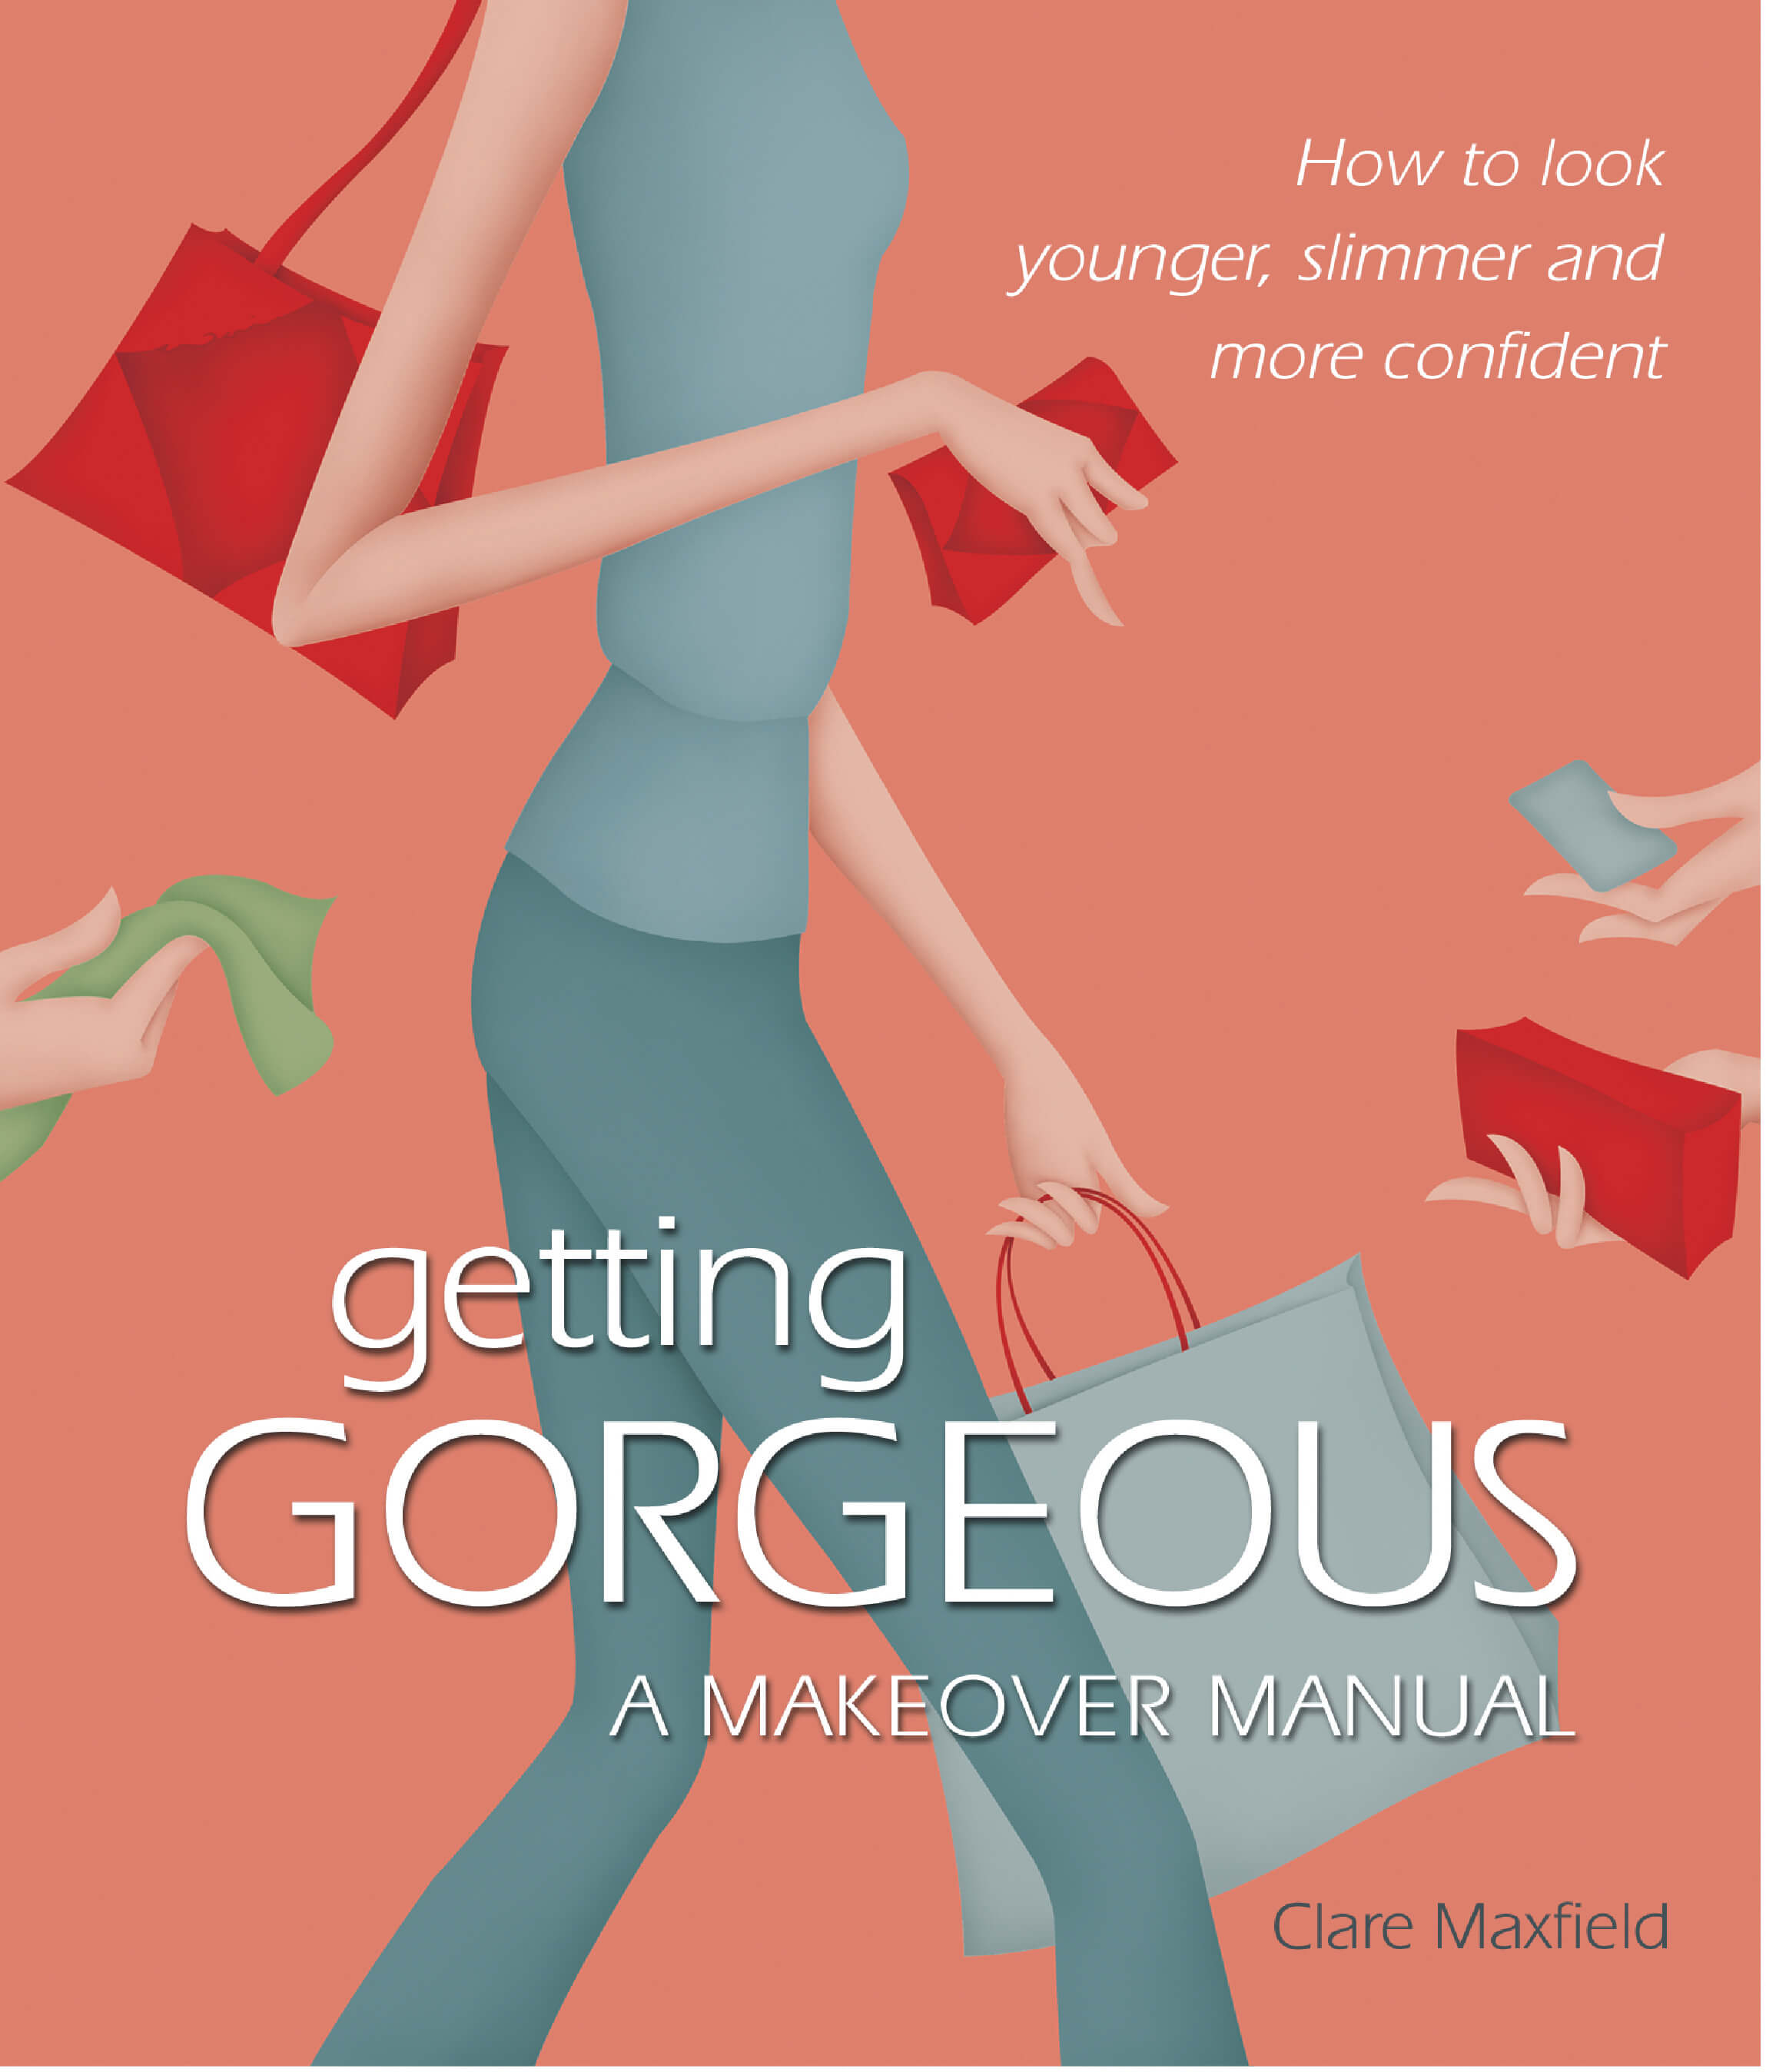 Getting Gorgeous: A Makeover Manual